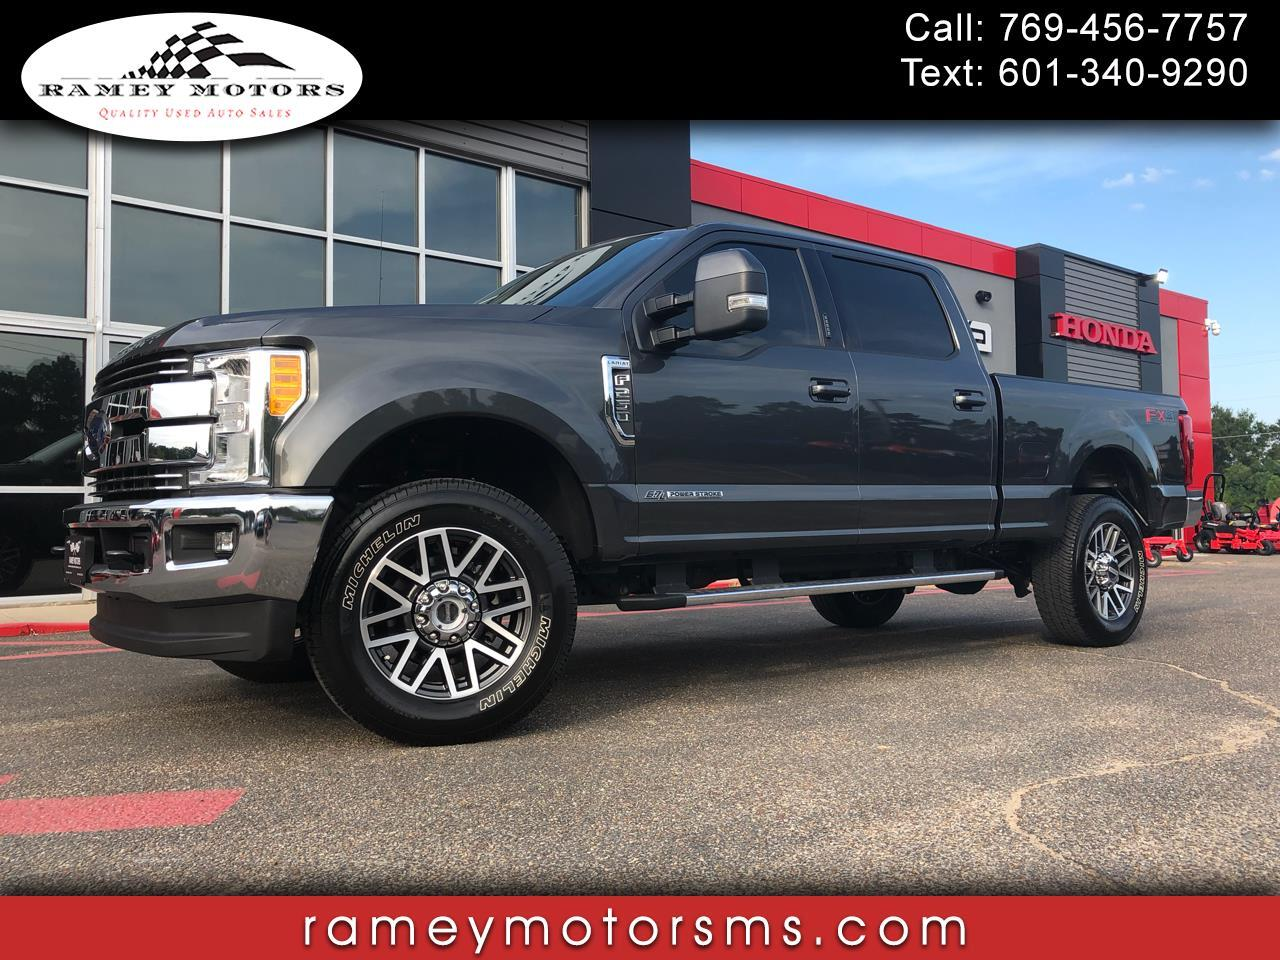 2017 Ford F250 4WD CREWCAB LARIAT DPF DELETED